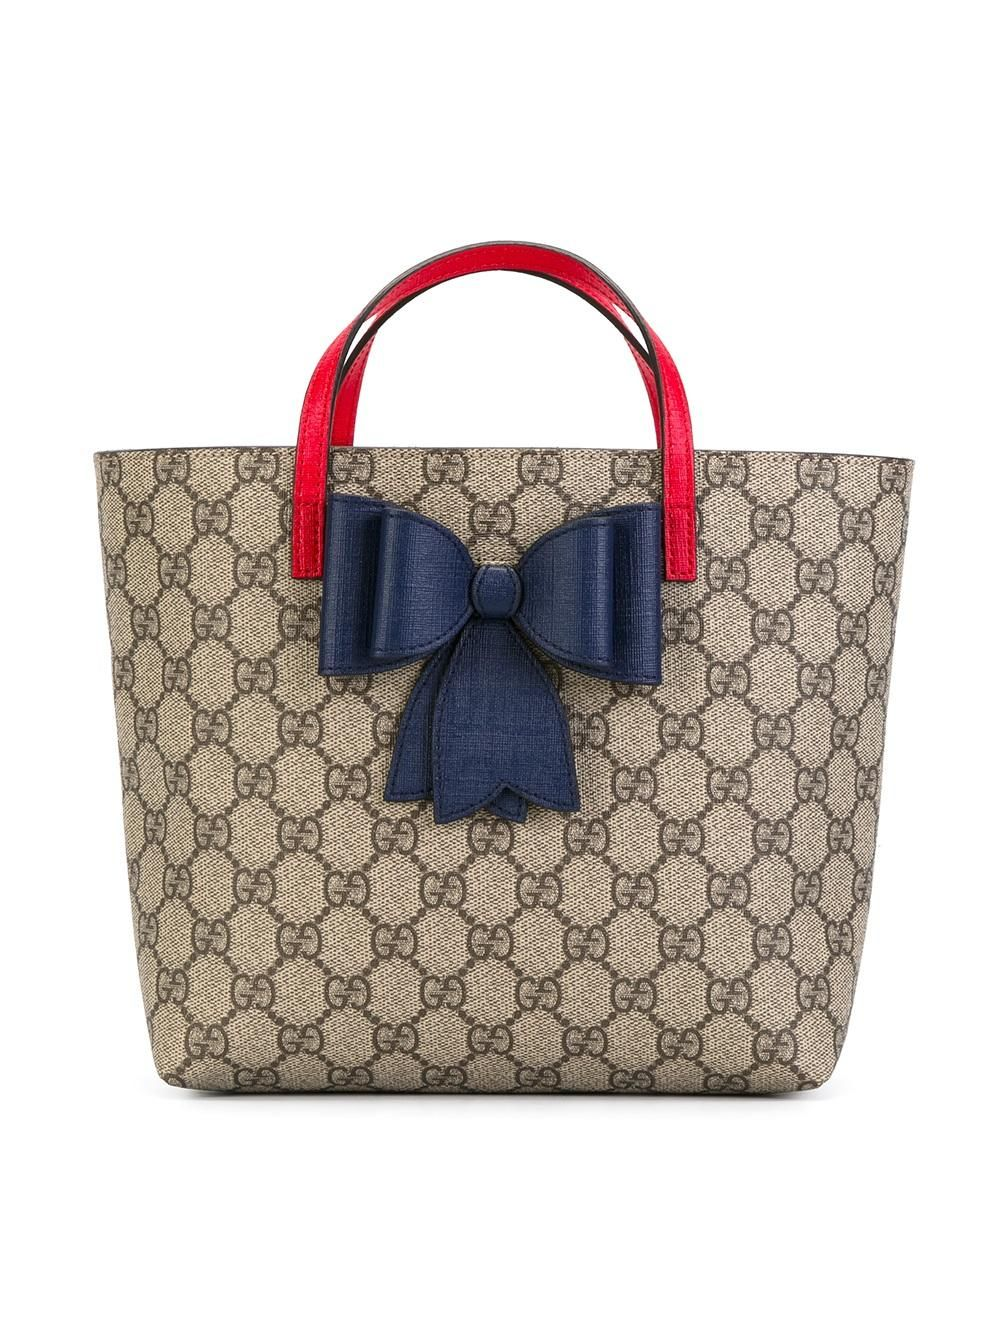 08ab93e7874 gucci  kids  gg  tote  bag  bow  blue  red  detail  style www.jofre ...